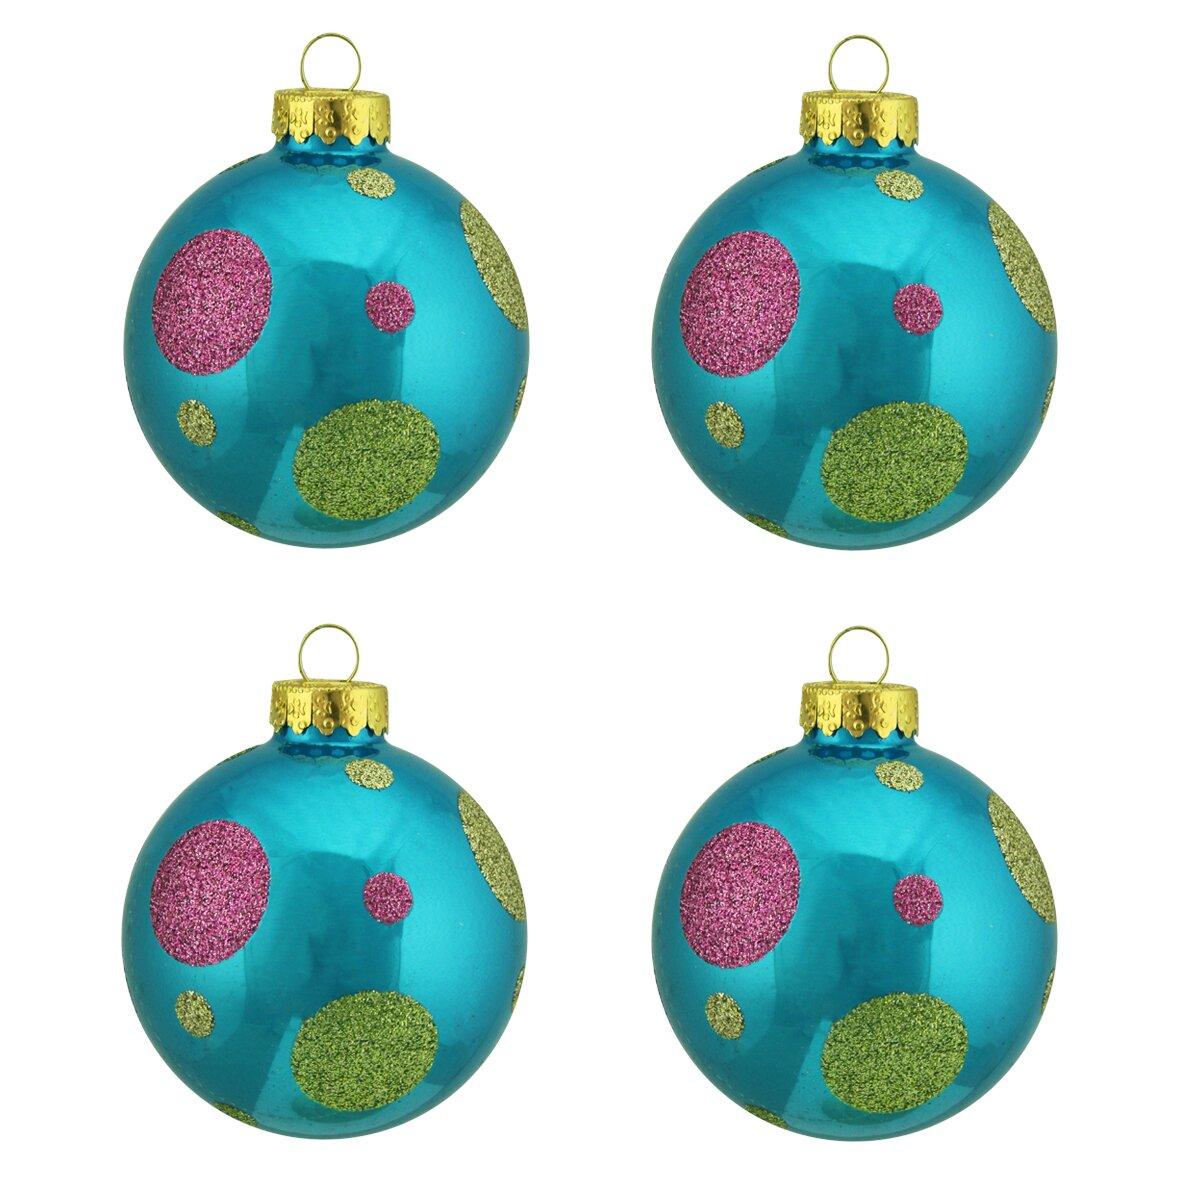 28 christmas ornaments design christmas ornament embroidery glitter polka dot design glass ball christmas ornament by northlight